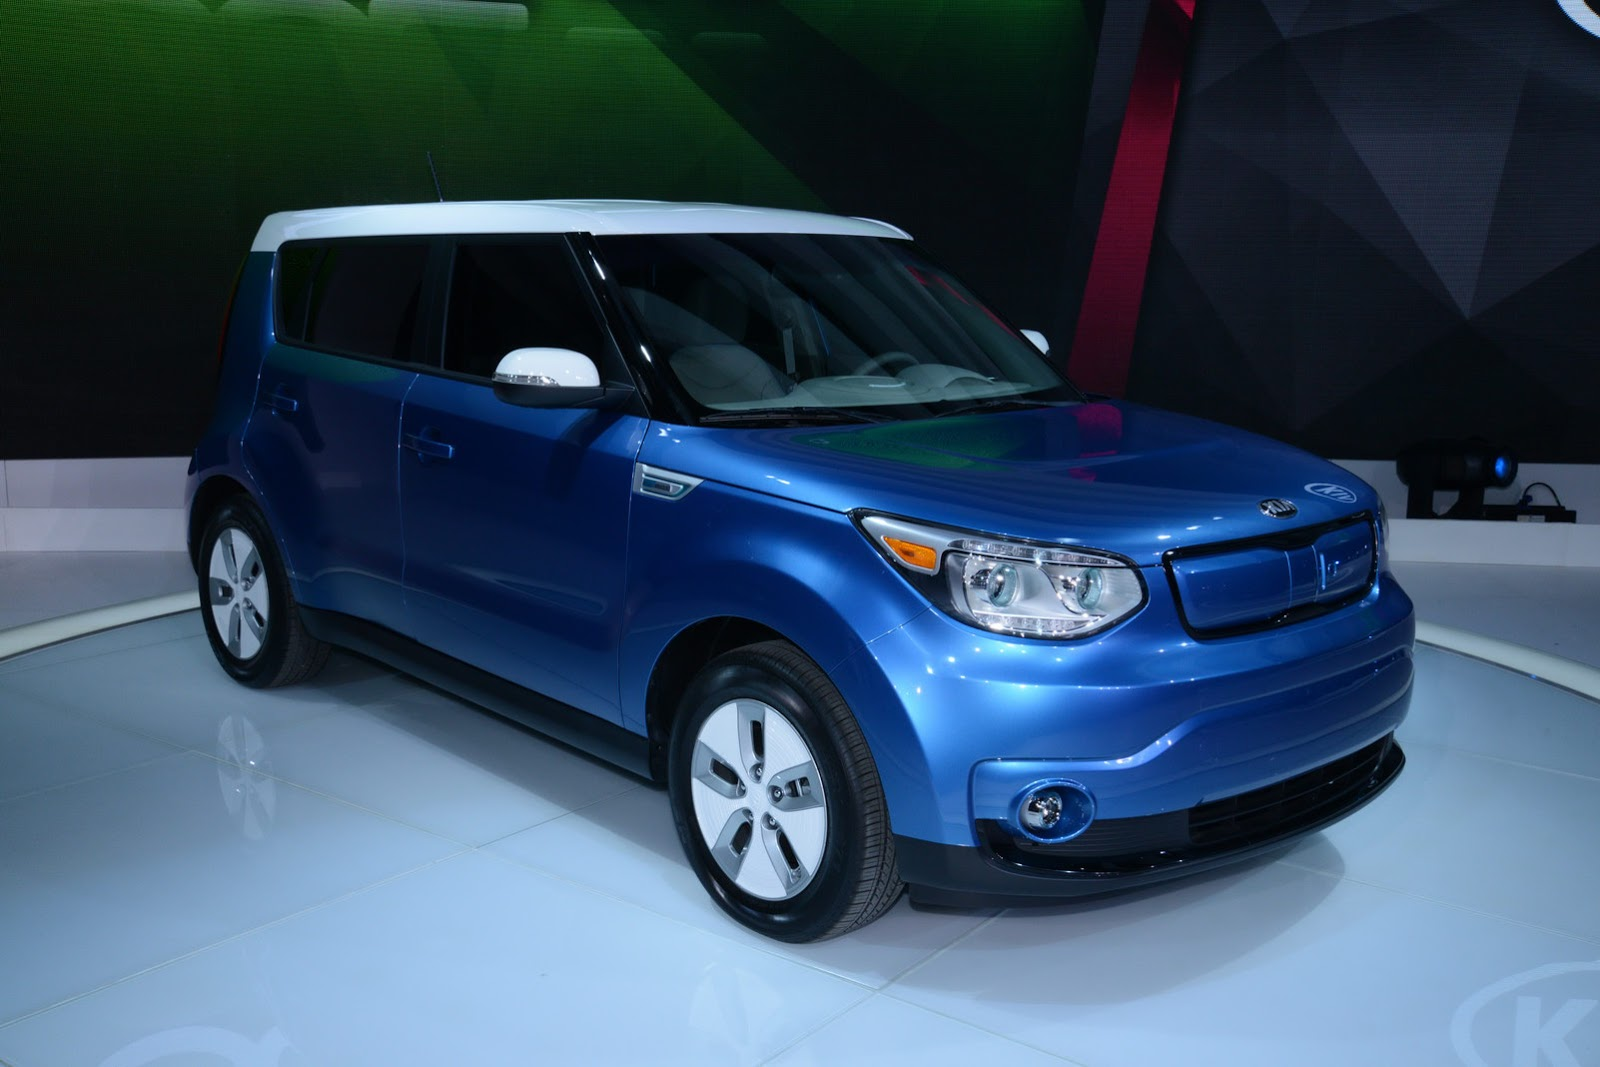 new electric 2015 kia soul from 33 700 sans 7 500 tax rebate carscoops. Black Bedroom Furniture Sets. Home Design Ideas